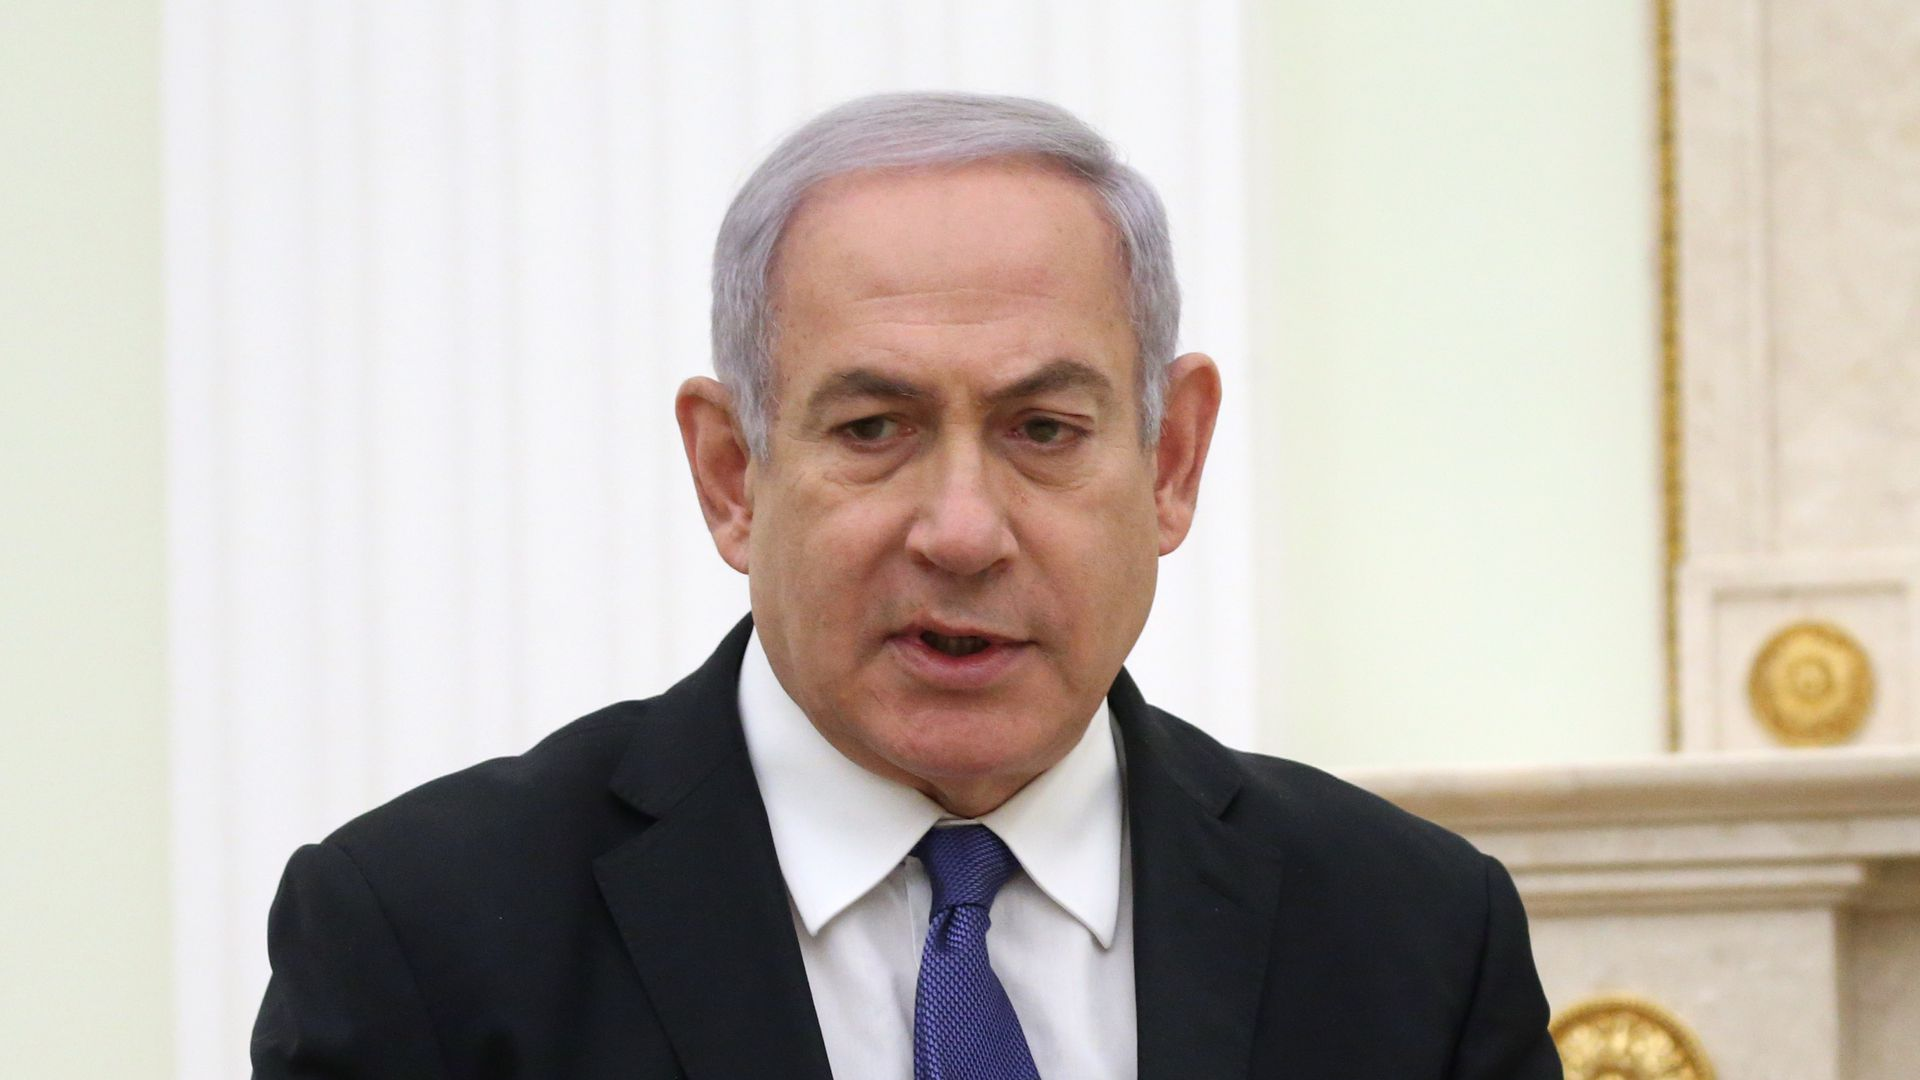 Israeli Prime Minister Benjamin Netanyahu is cutting short his White House visit after the attack from Gaza.